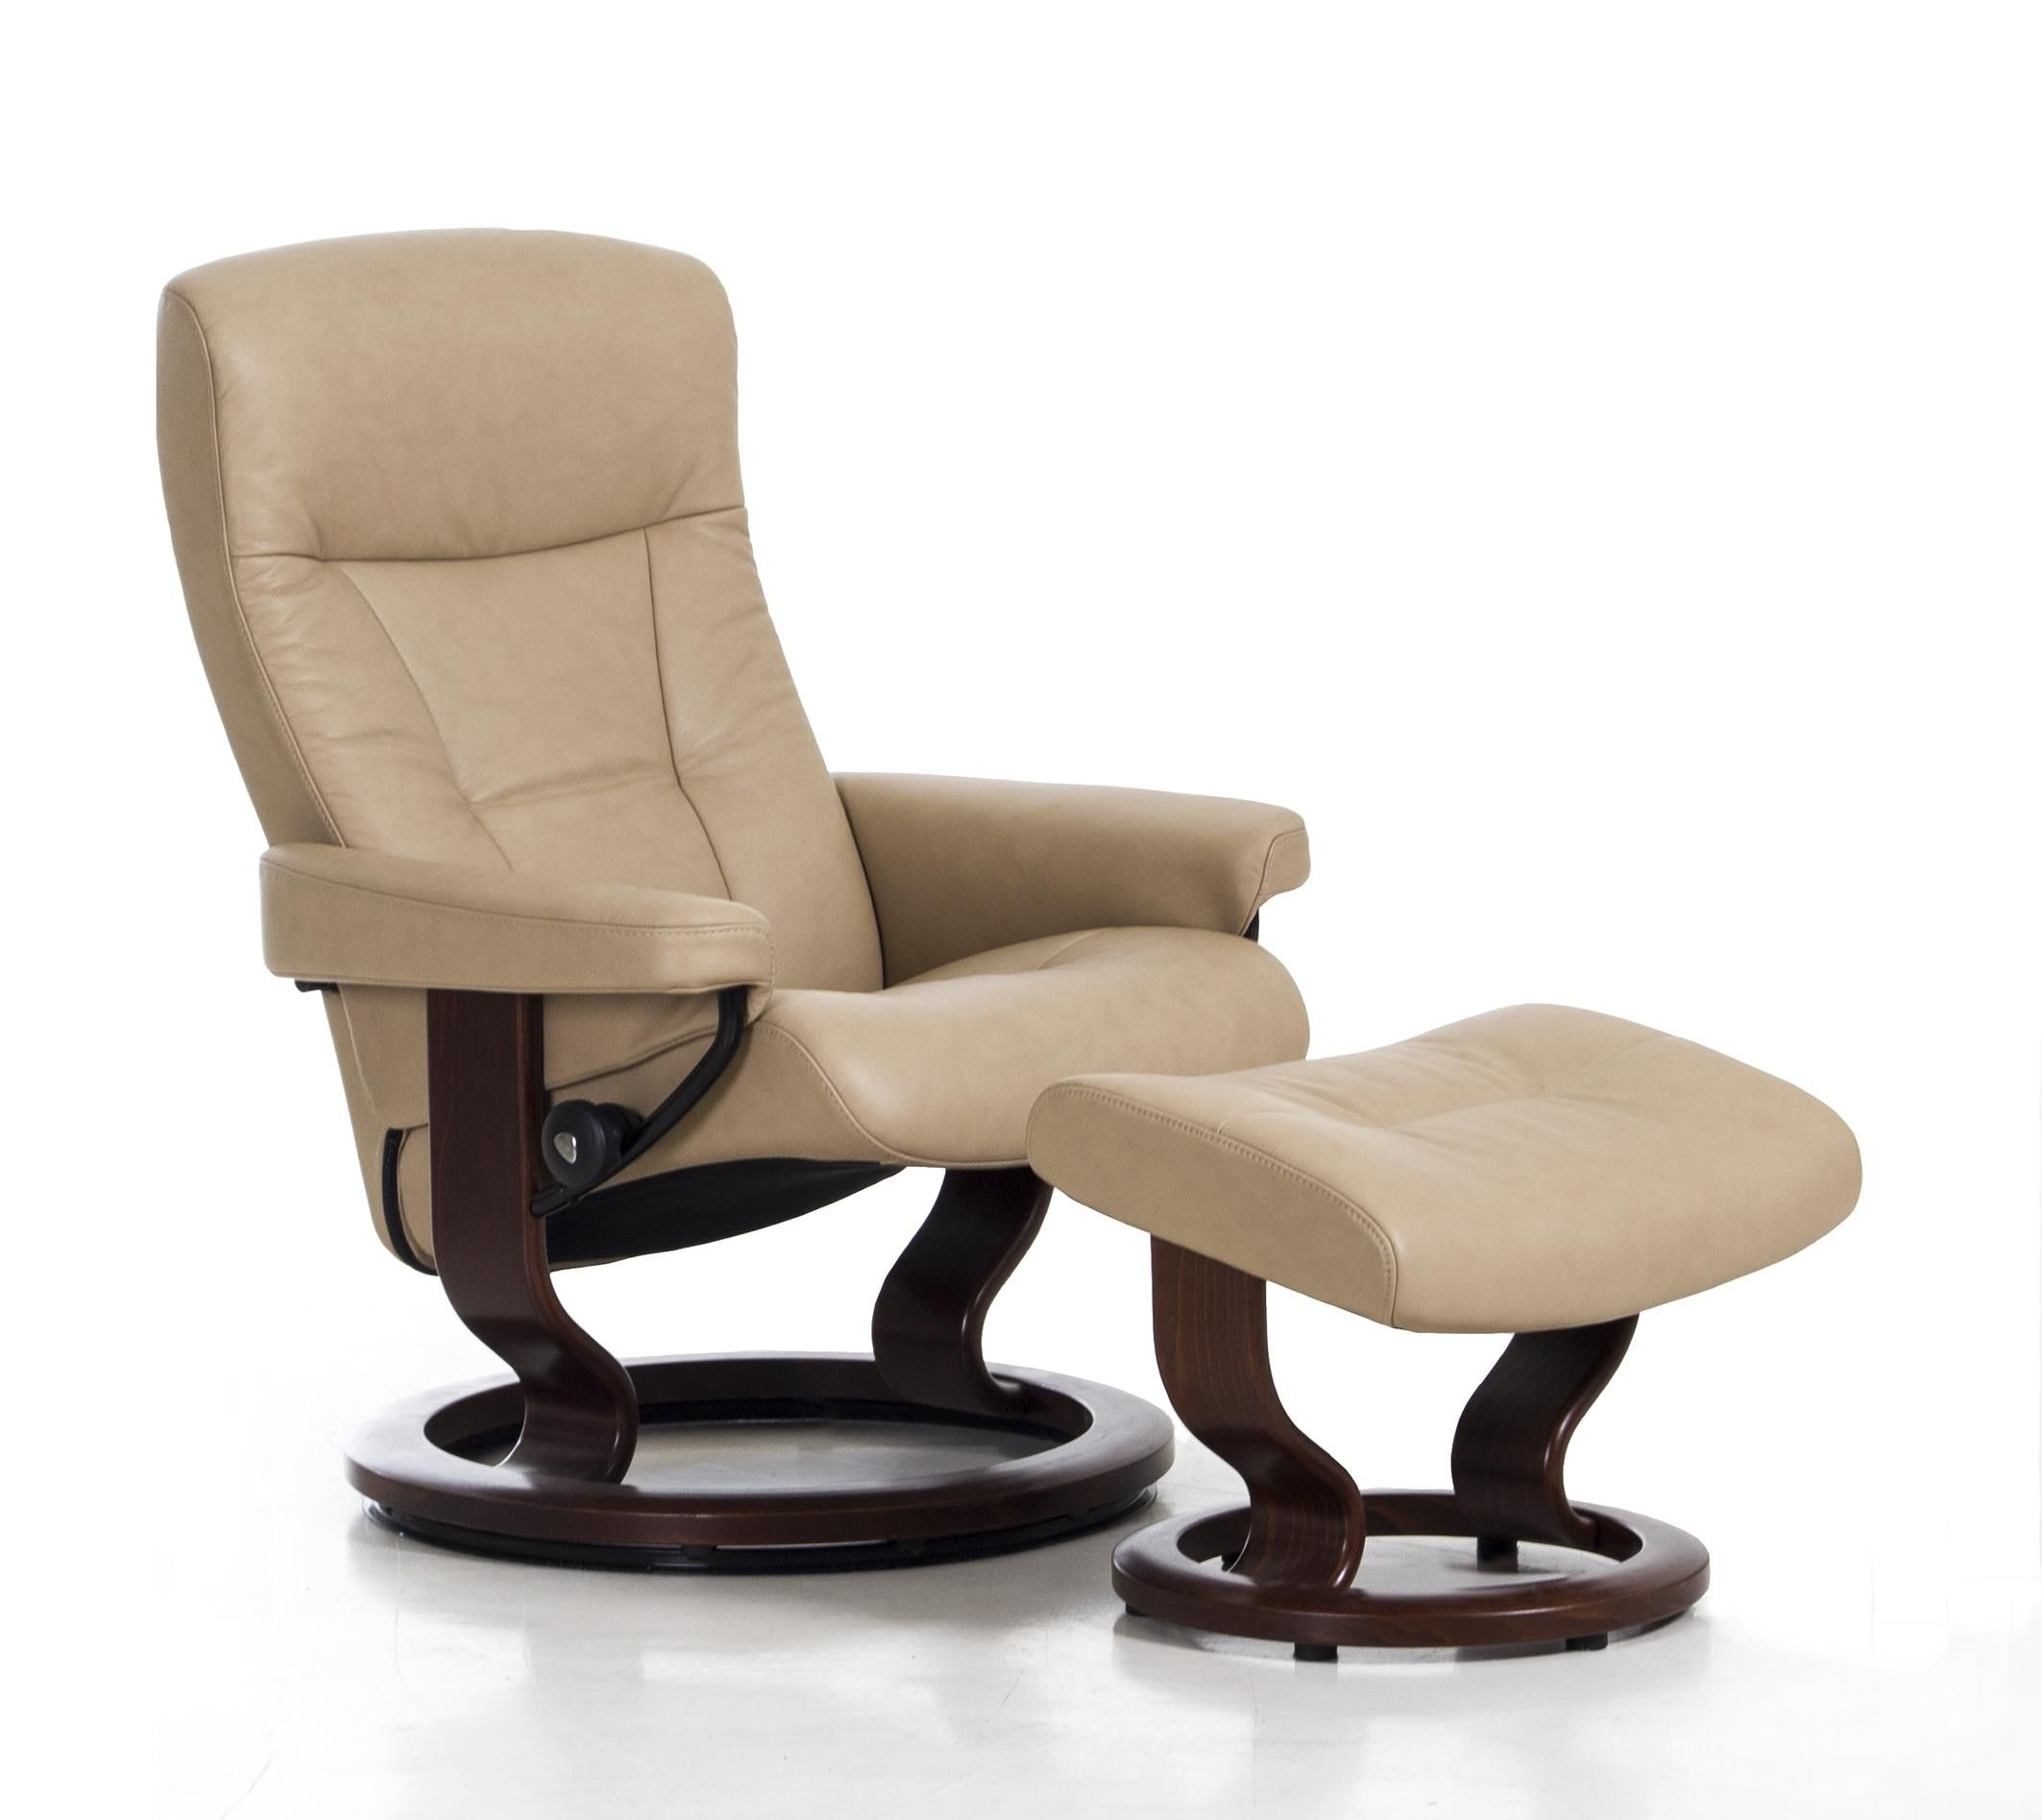 Recliner Chair With Ottoman Manufacturers Hanging Gumtree Brisbane Ekornes Stressless President And House